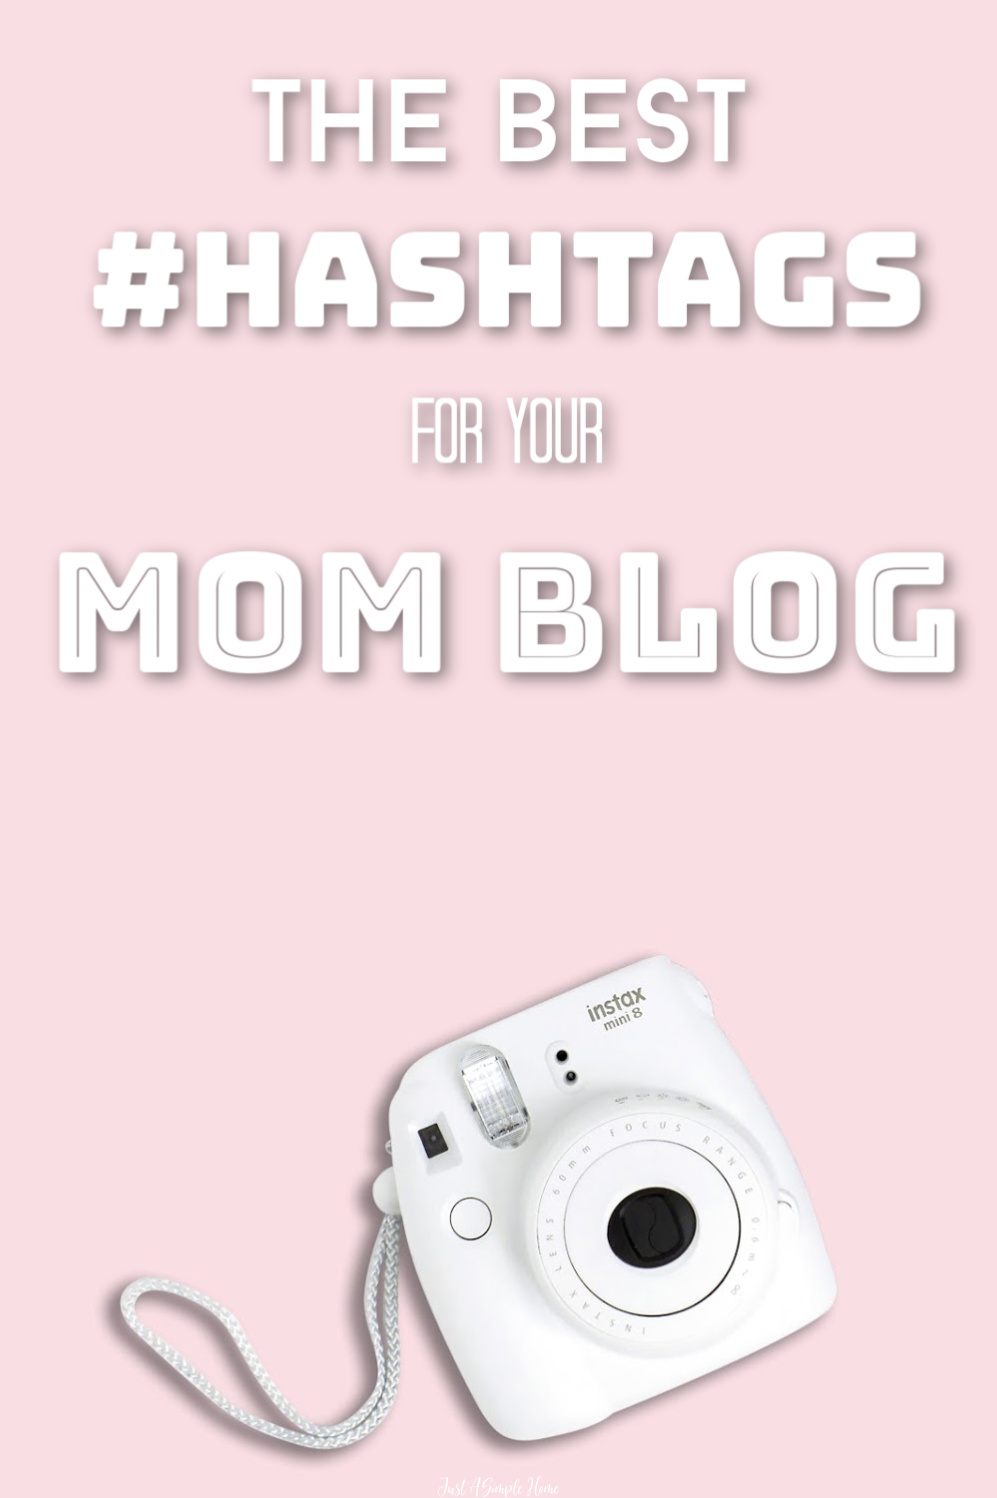 The Best Hashtags for Mom Bloggers - a great list of hashtags to use on Instagram to grow your community. #instagramtips #bloggingtips #momblog #hashtags #blogger